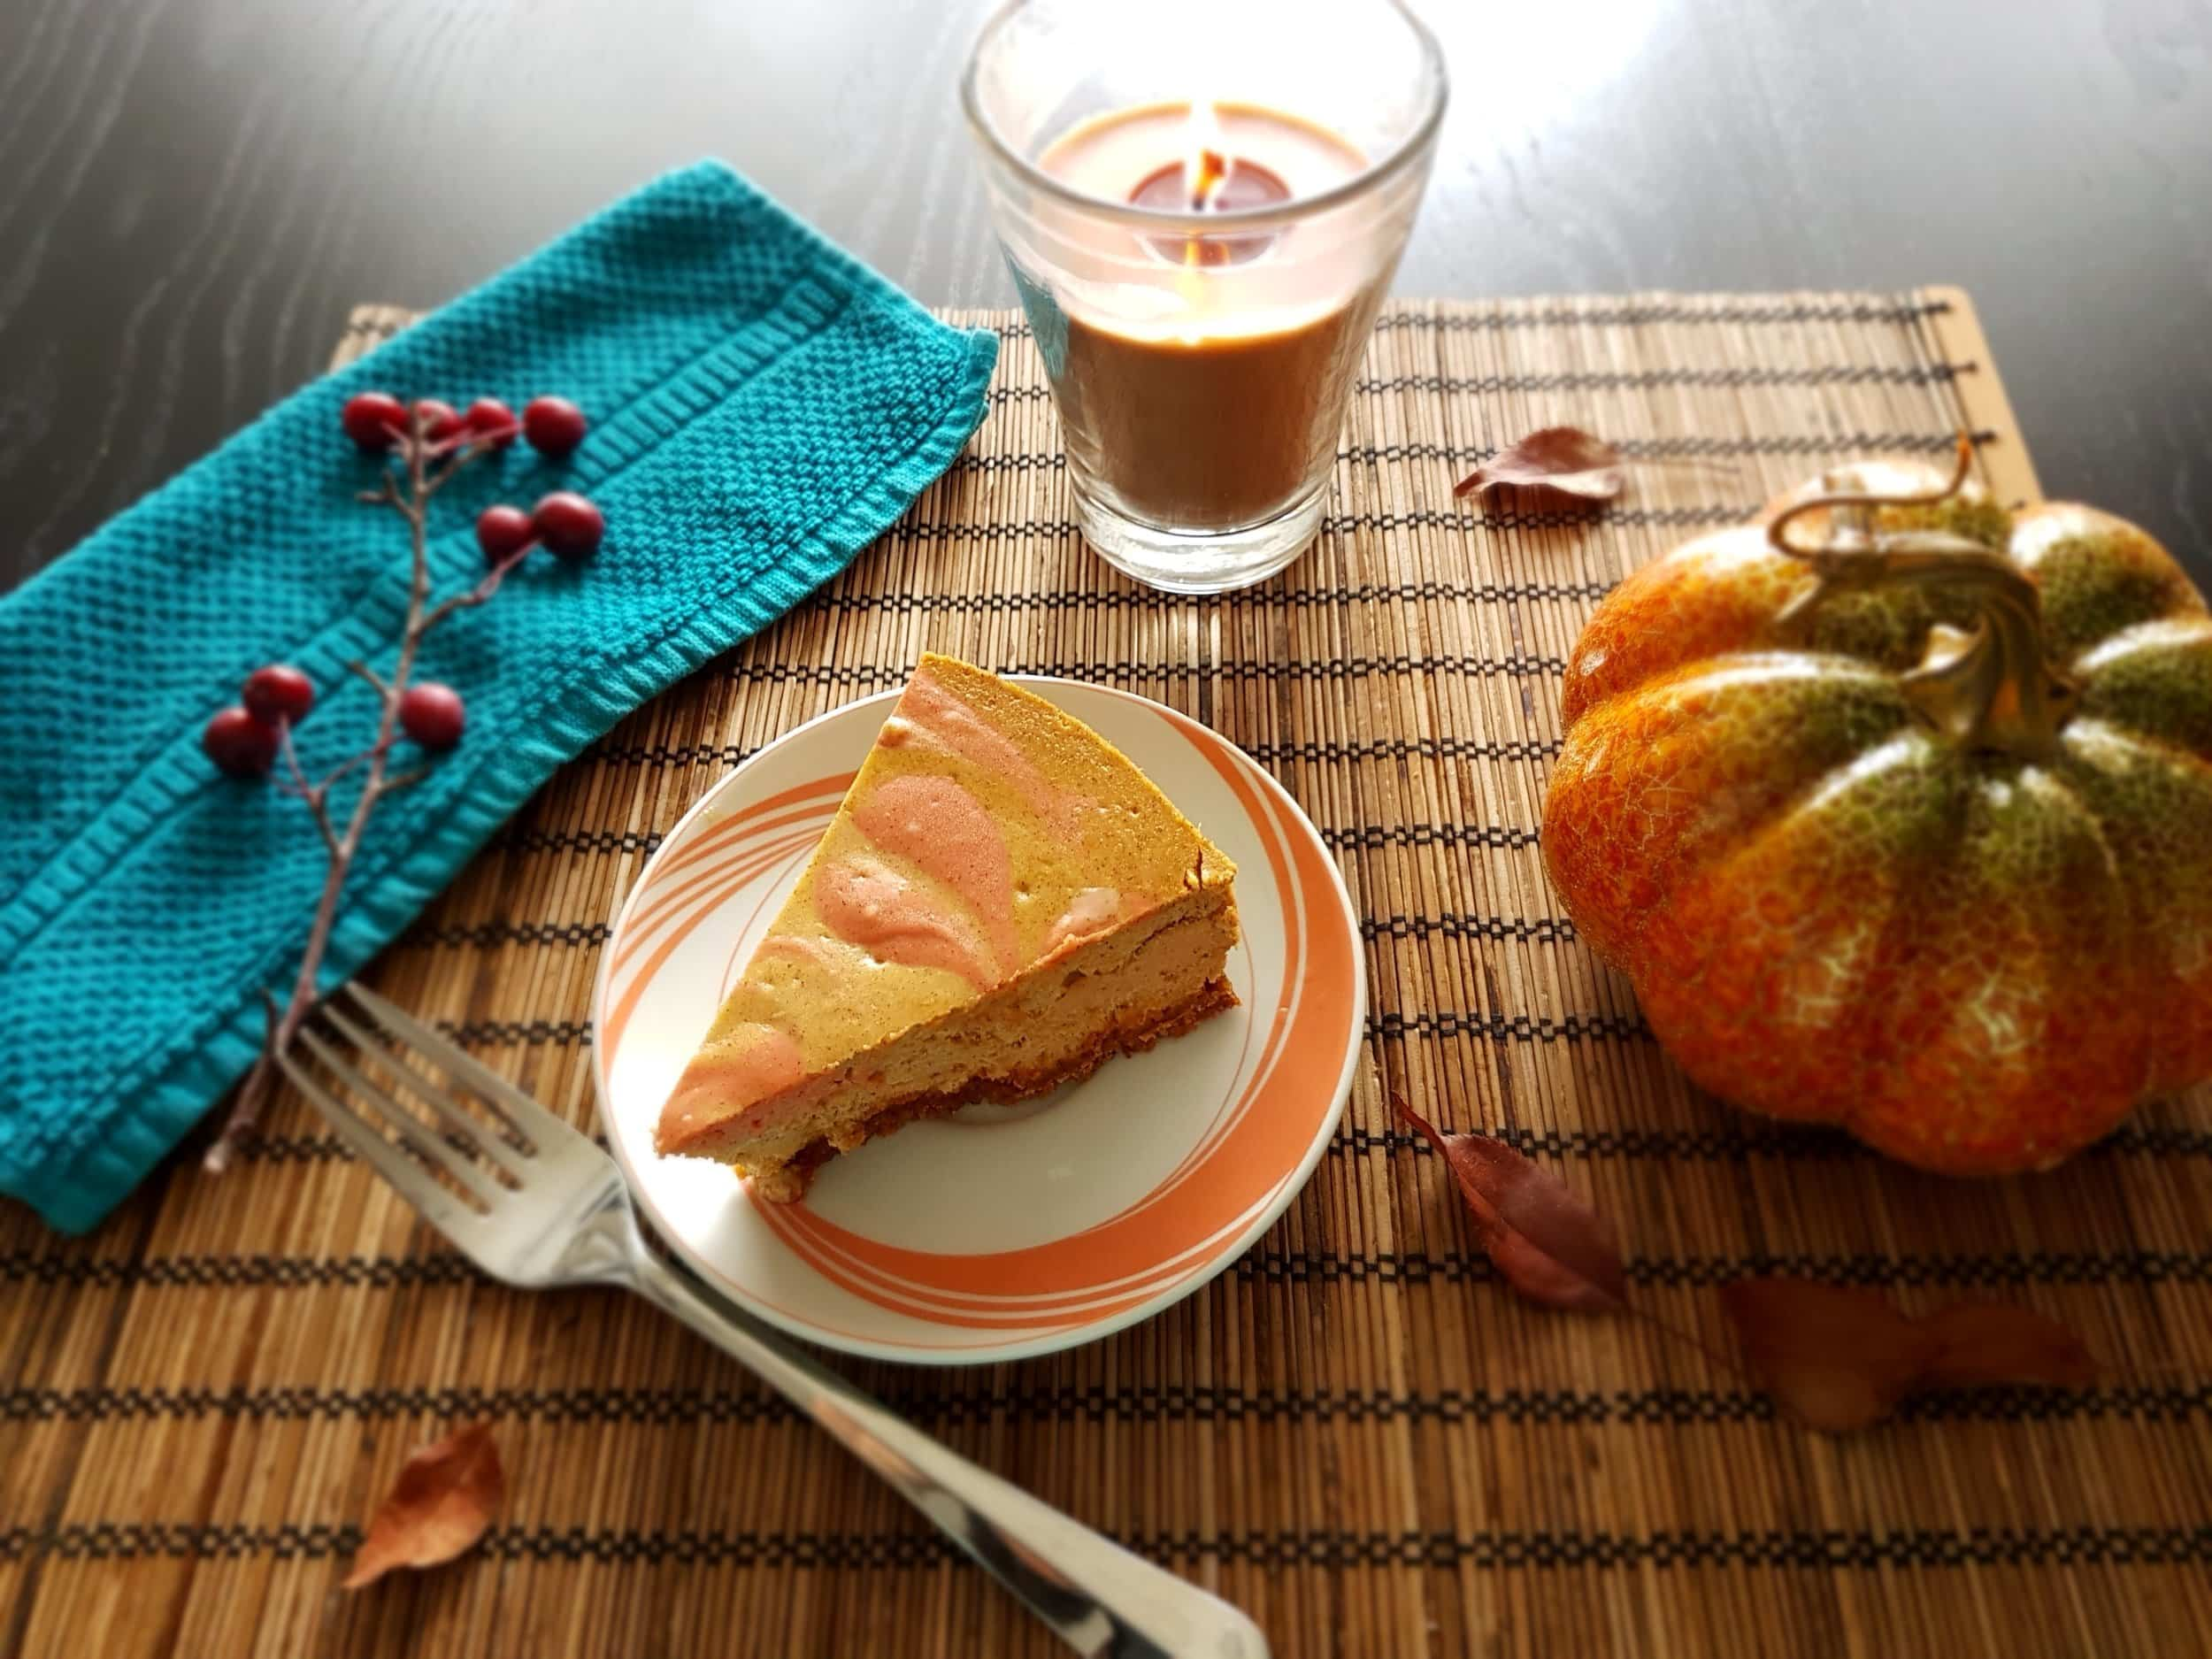 A slice of Baked Pumpkin Cheesecake surrounded by autumn decor.